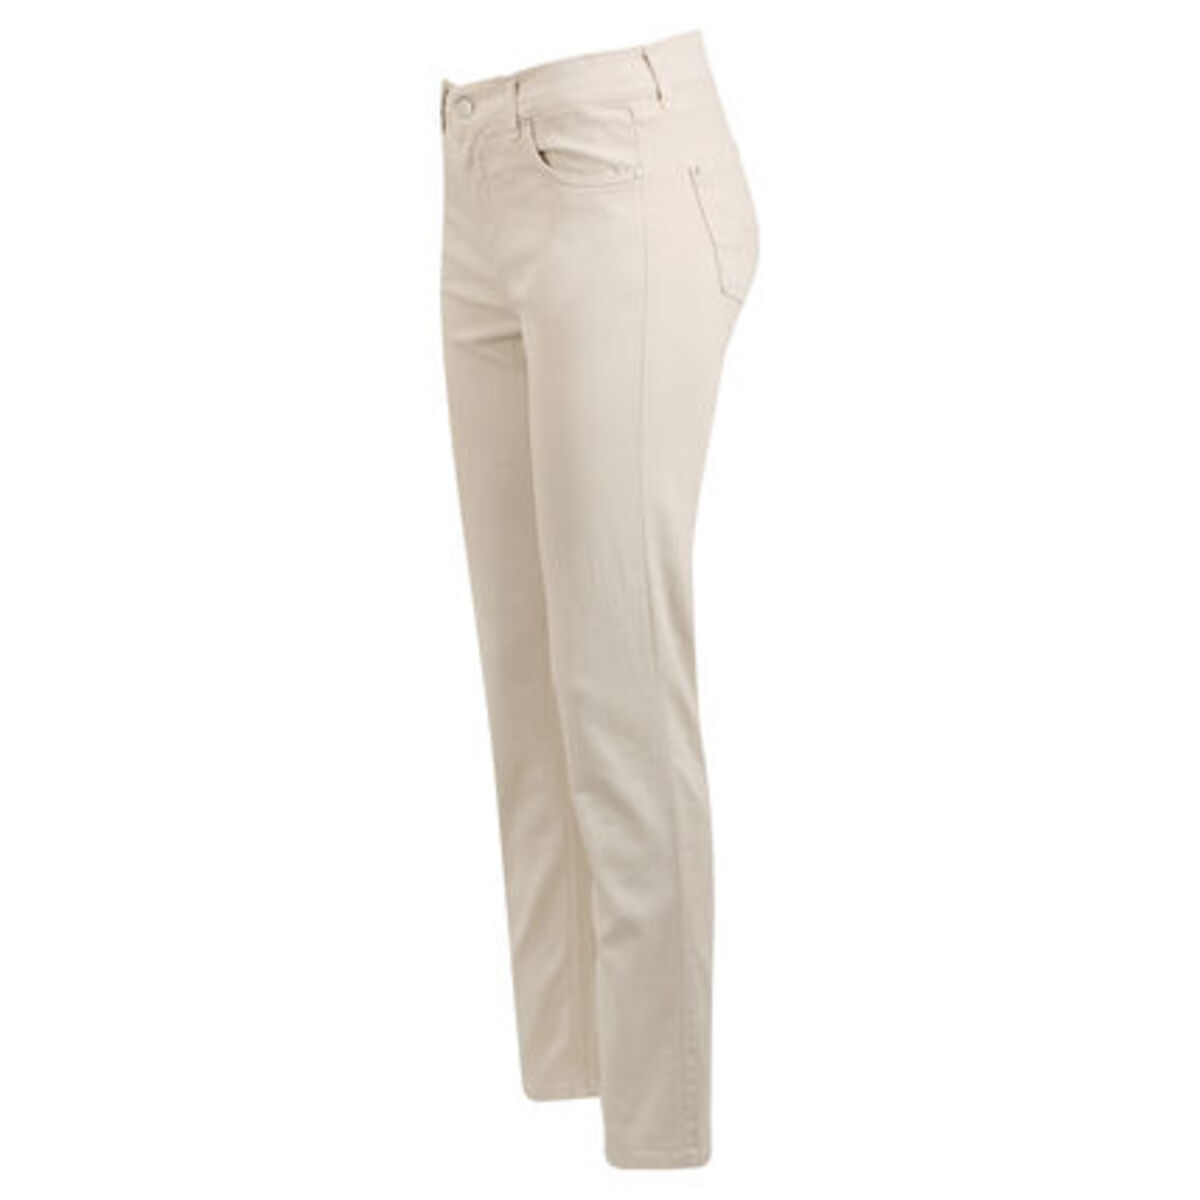 "Bild 2 von Angels Jeans ""Cici"", Regular Fit, Straight Leg, unifarben"